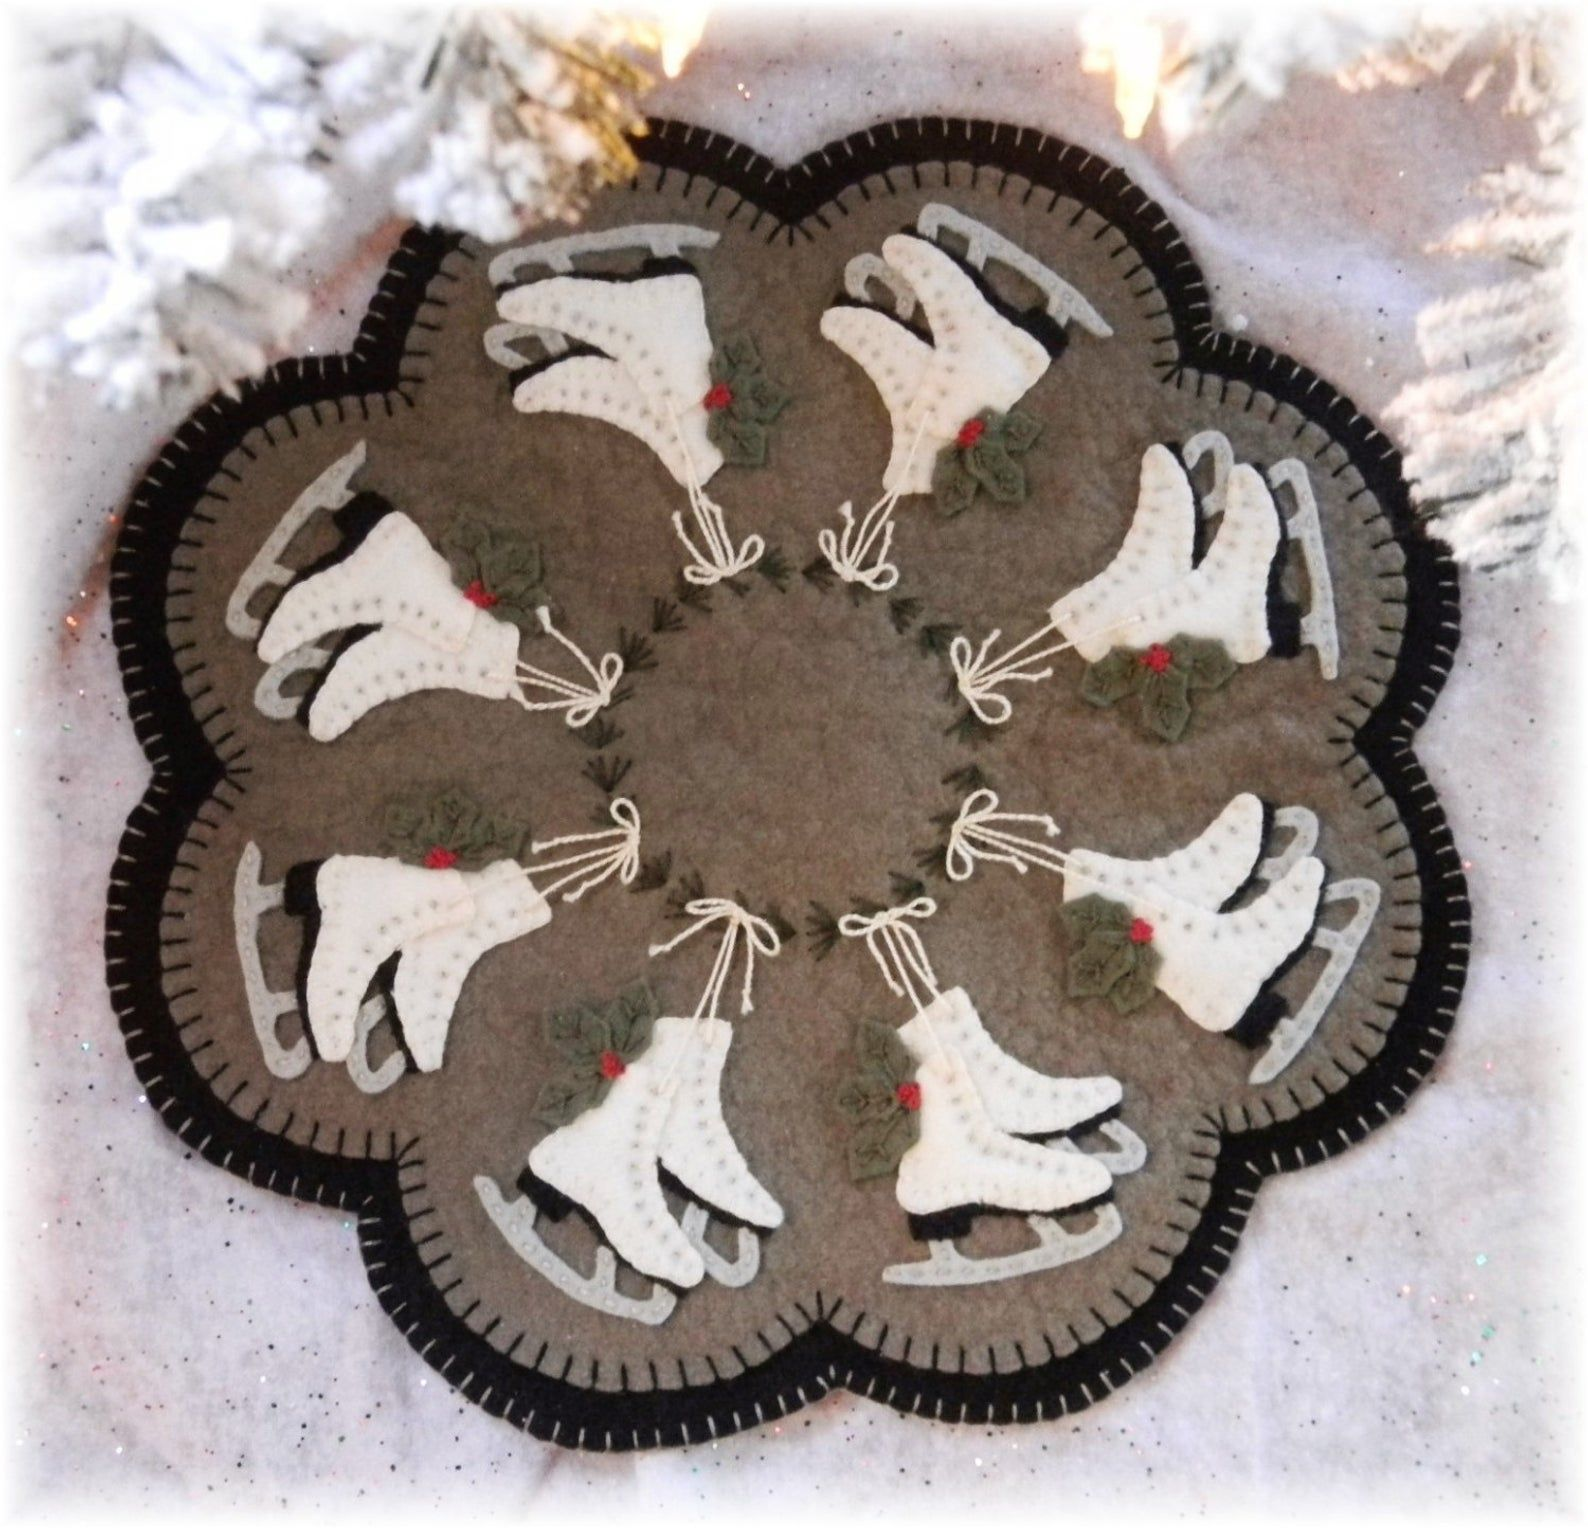 ~*SnOw BaBiEs*~ Winter//Christmas Penny Rug//Candle Mat//Ornies *PATTERN*